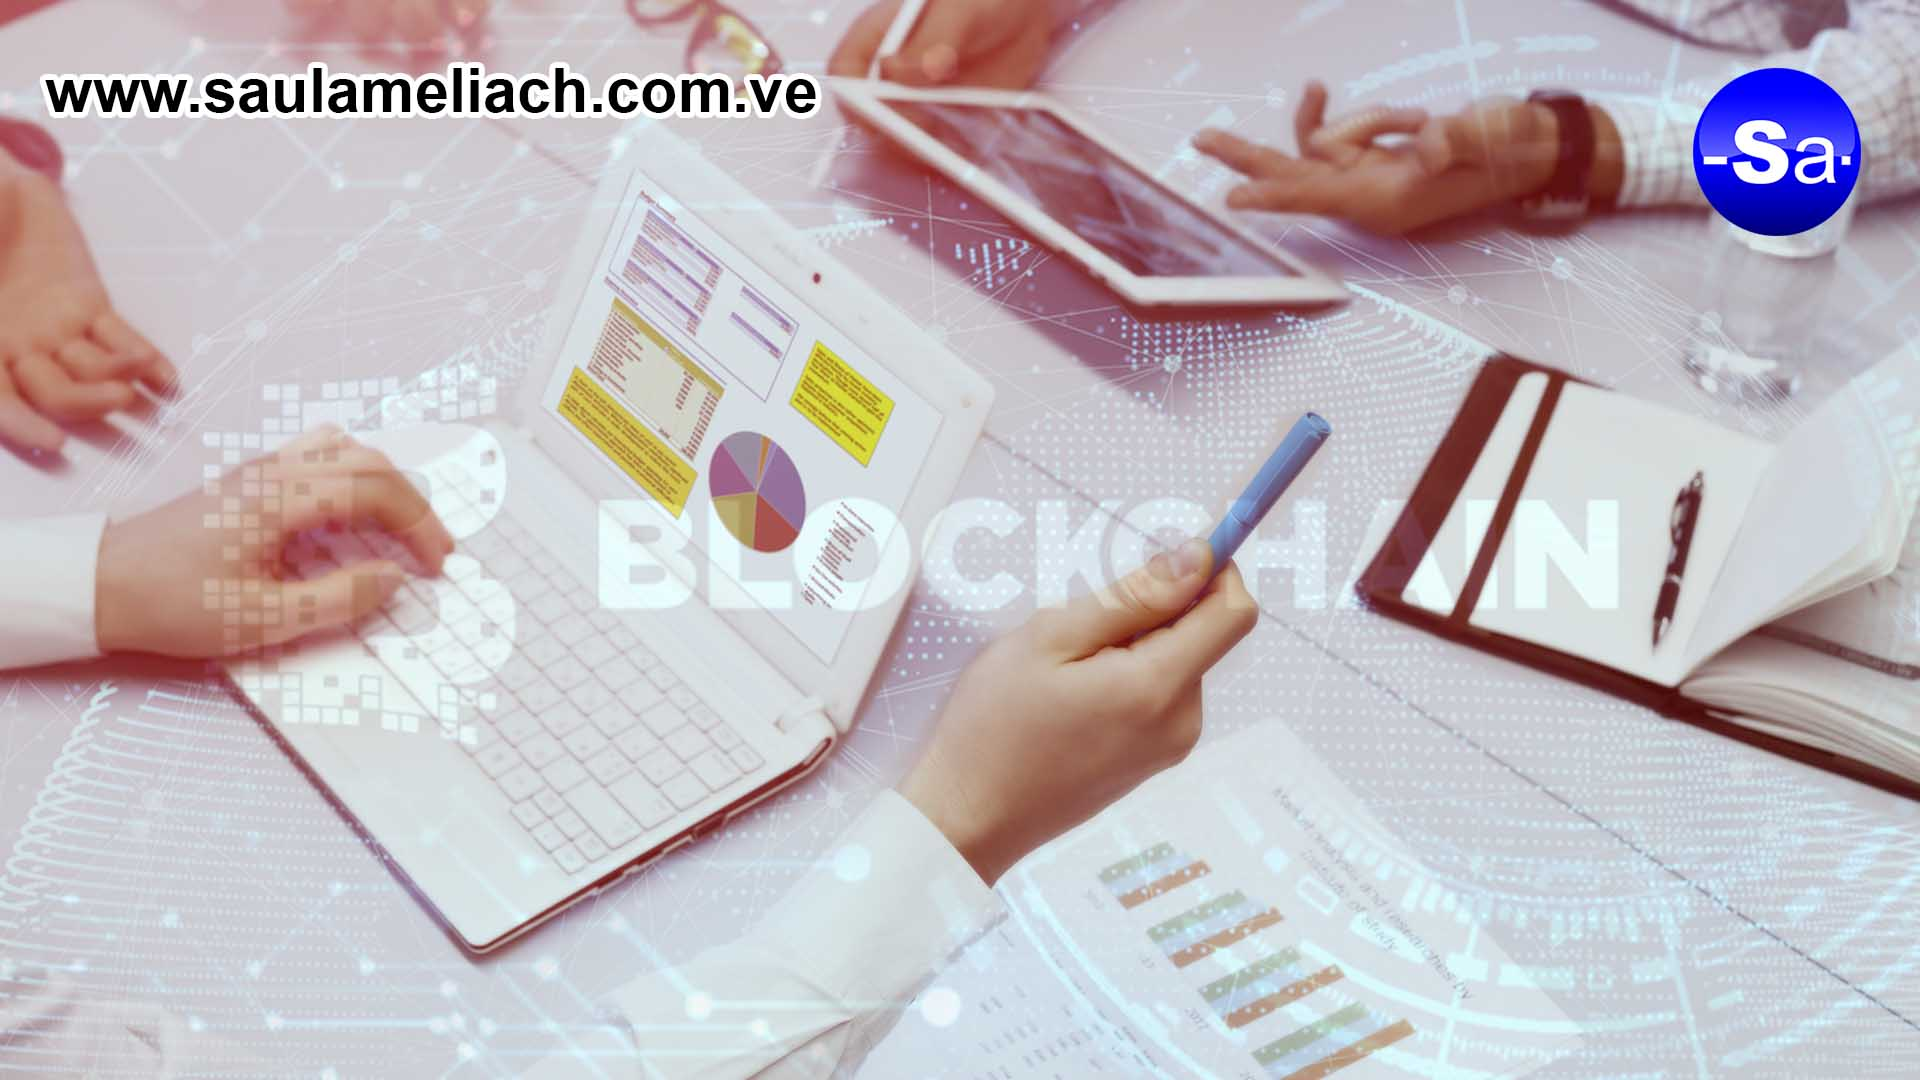 Saul Ameliach - Tecnología Blockchain y Marketing - éxito en el mundo digital